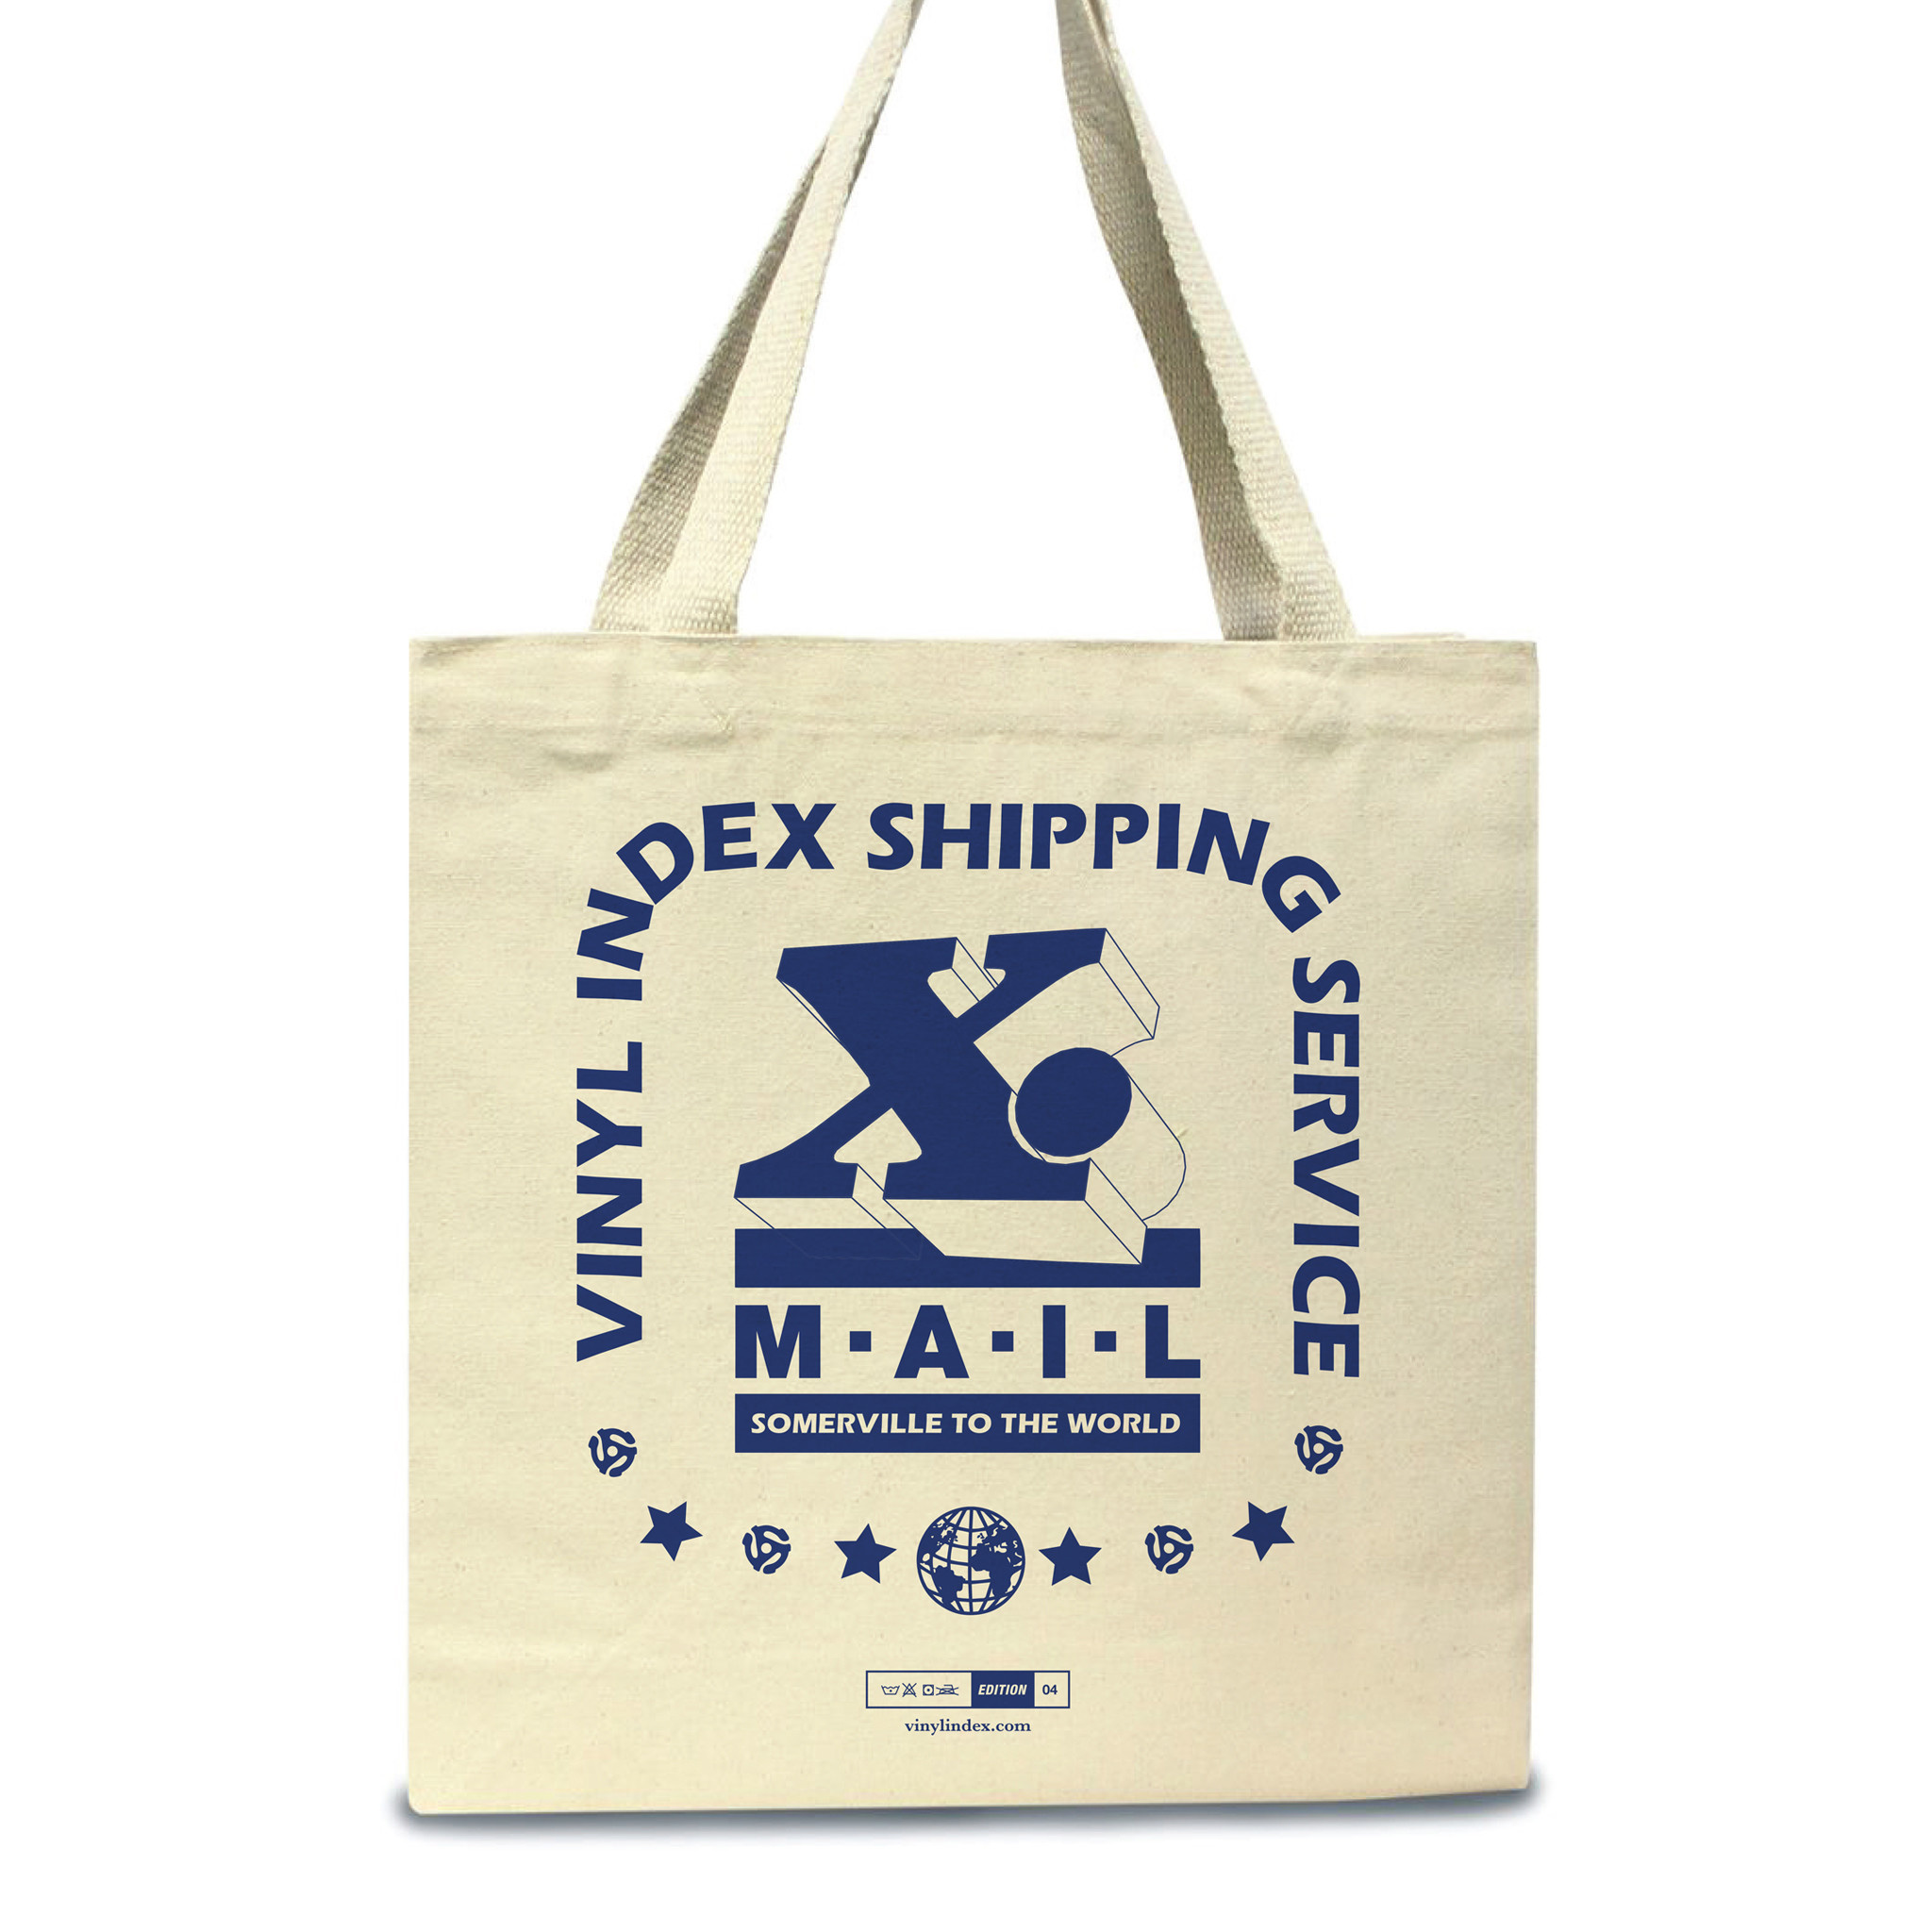 vinyl index. - 04 (Worldwide Edition) - Tote Bag - Natural